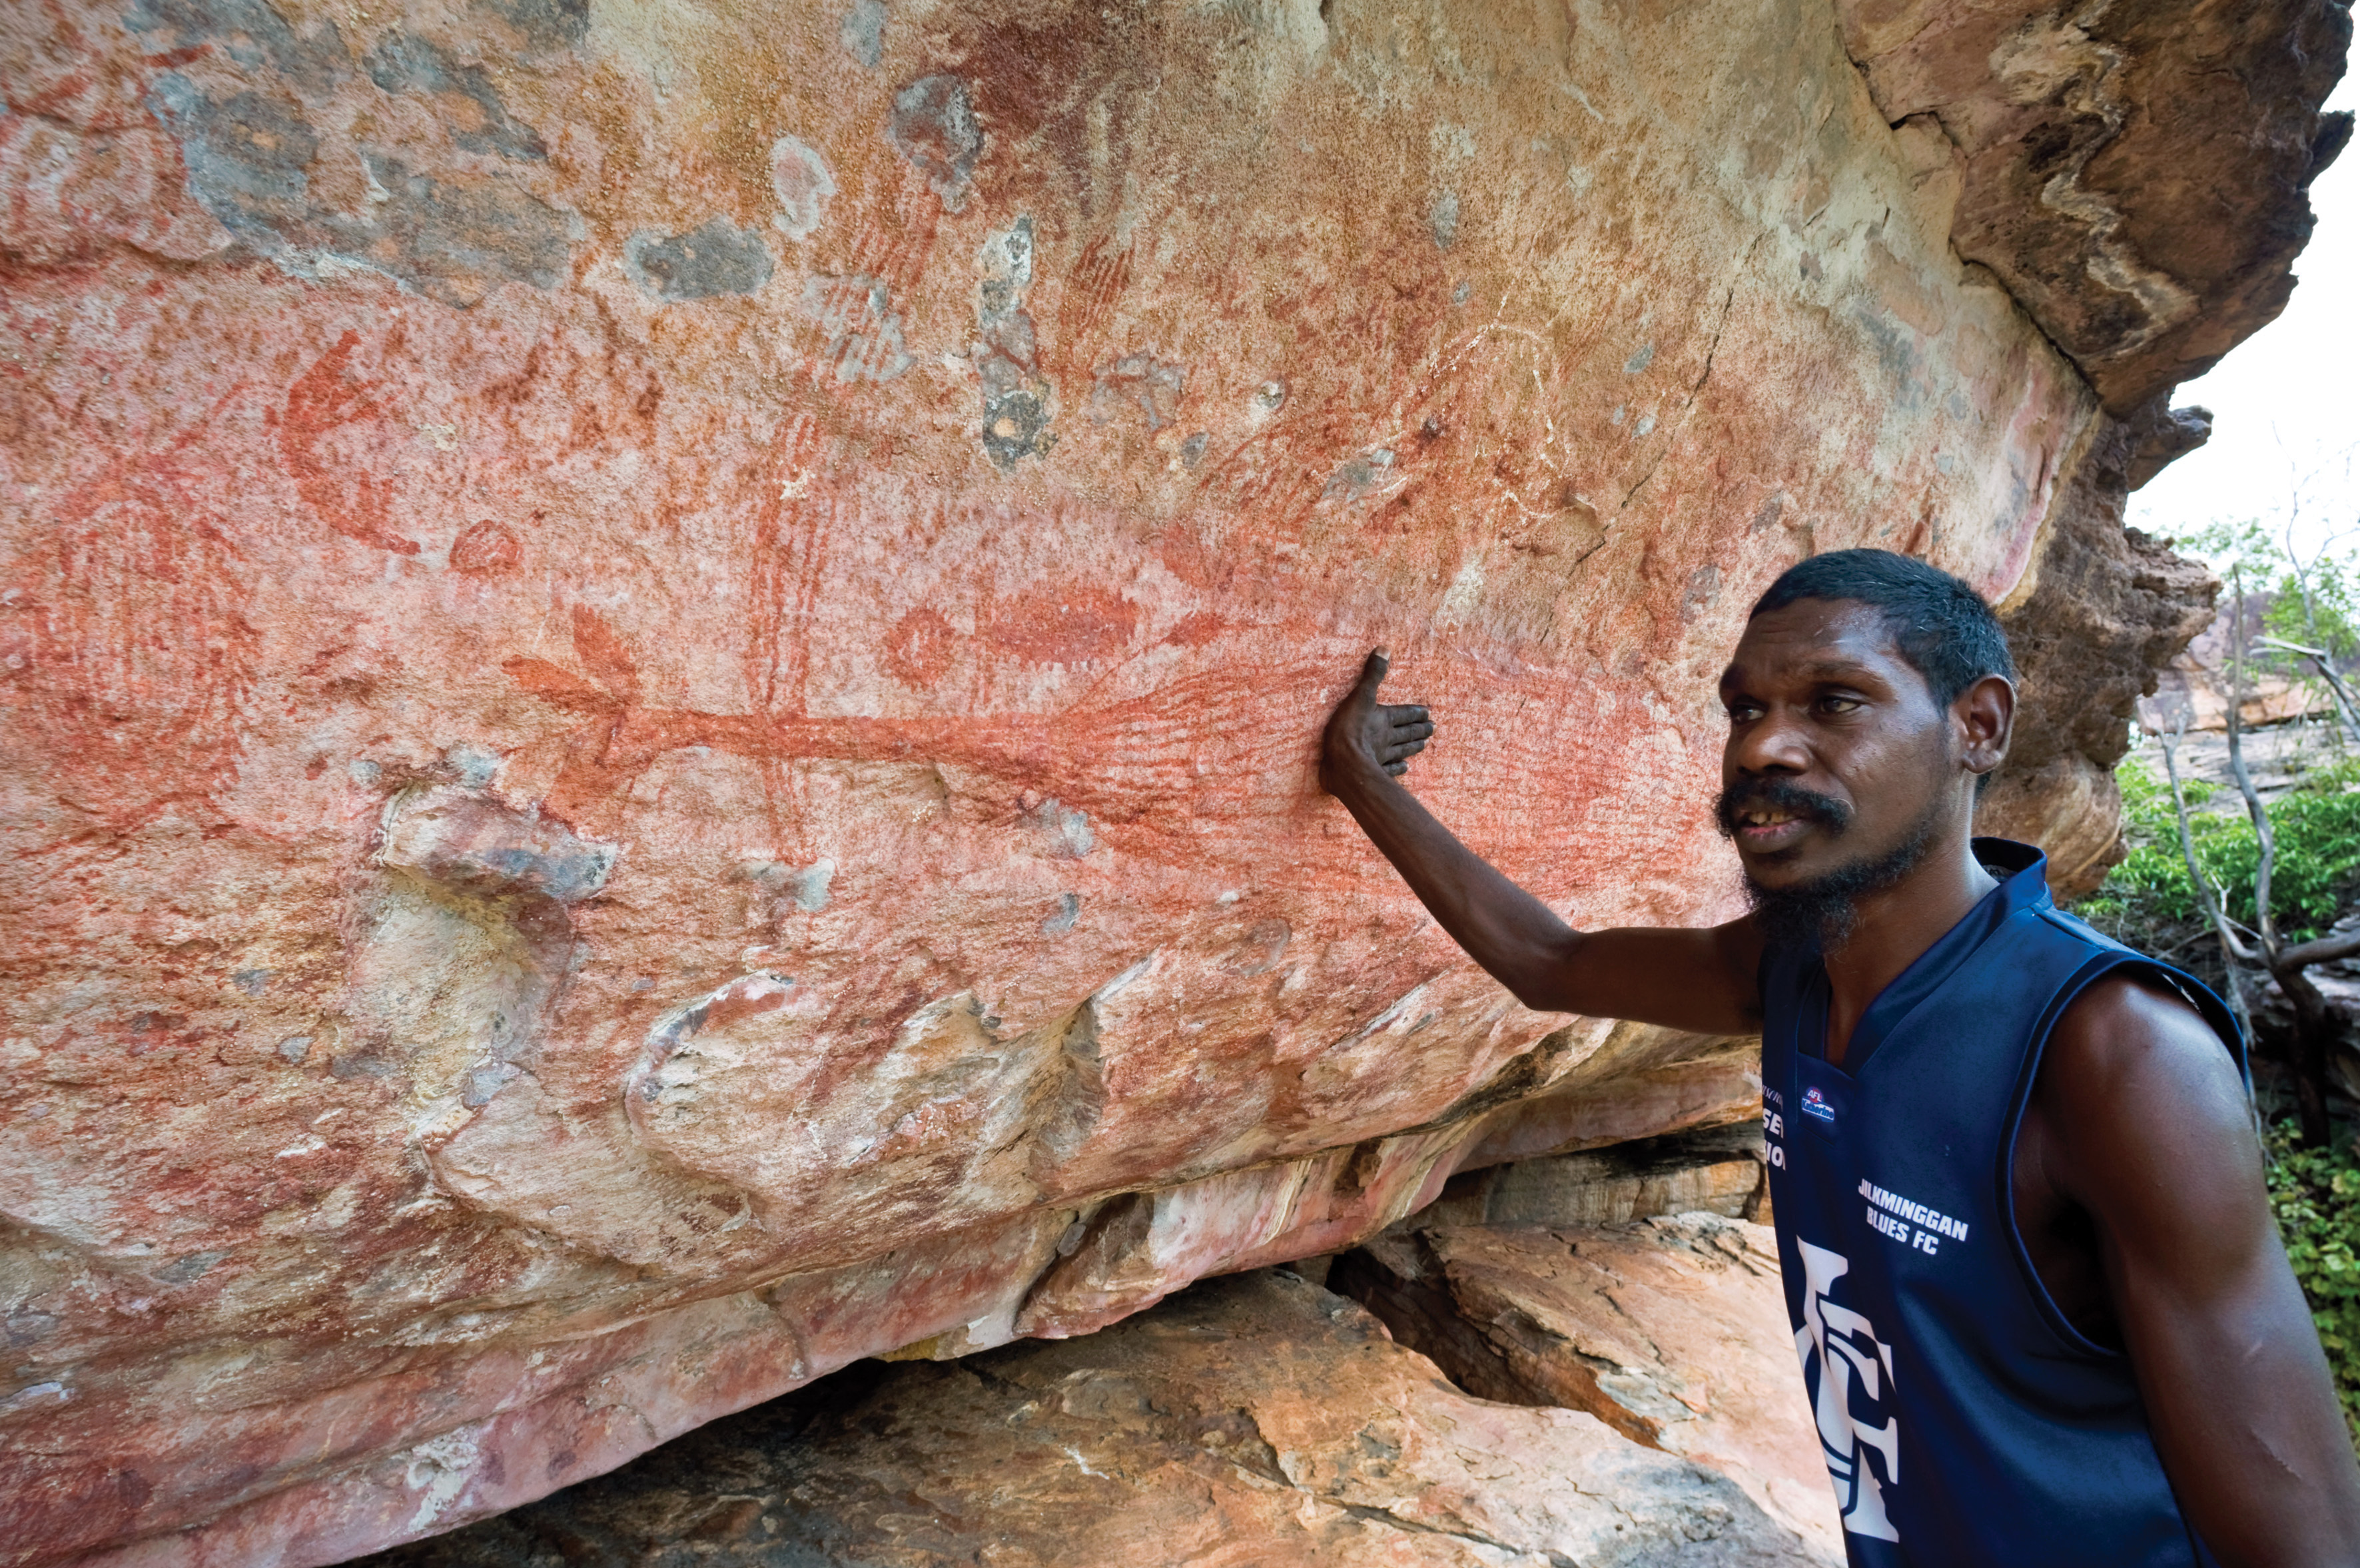 Some very good news for the future of Kakadu National Park and Jabiru